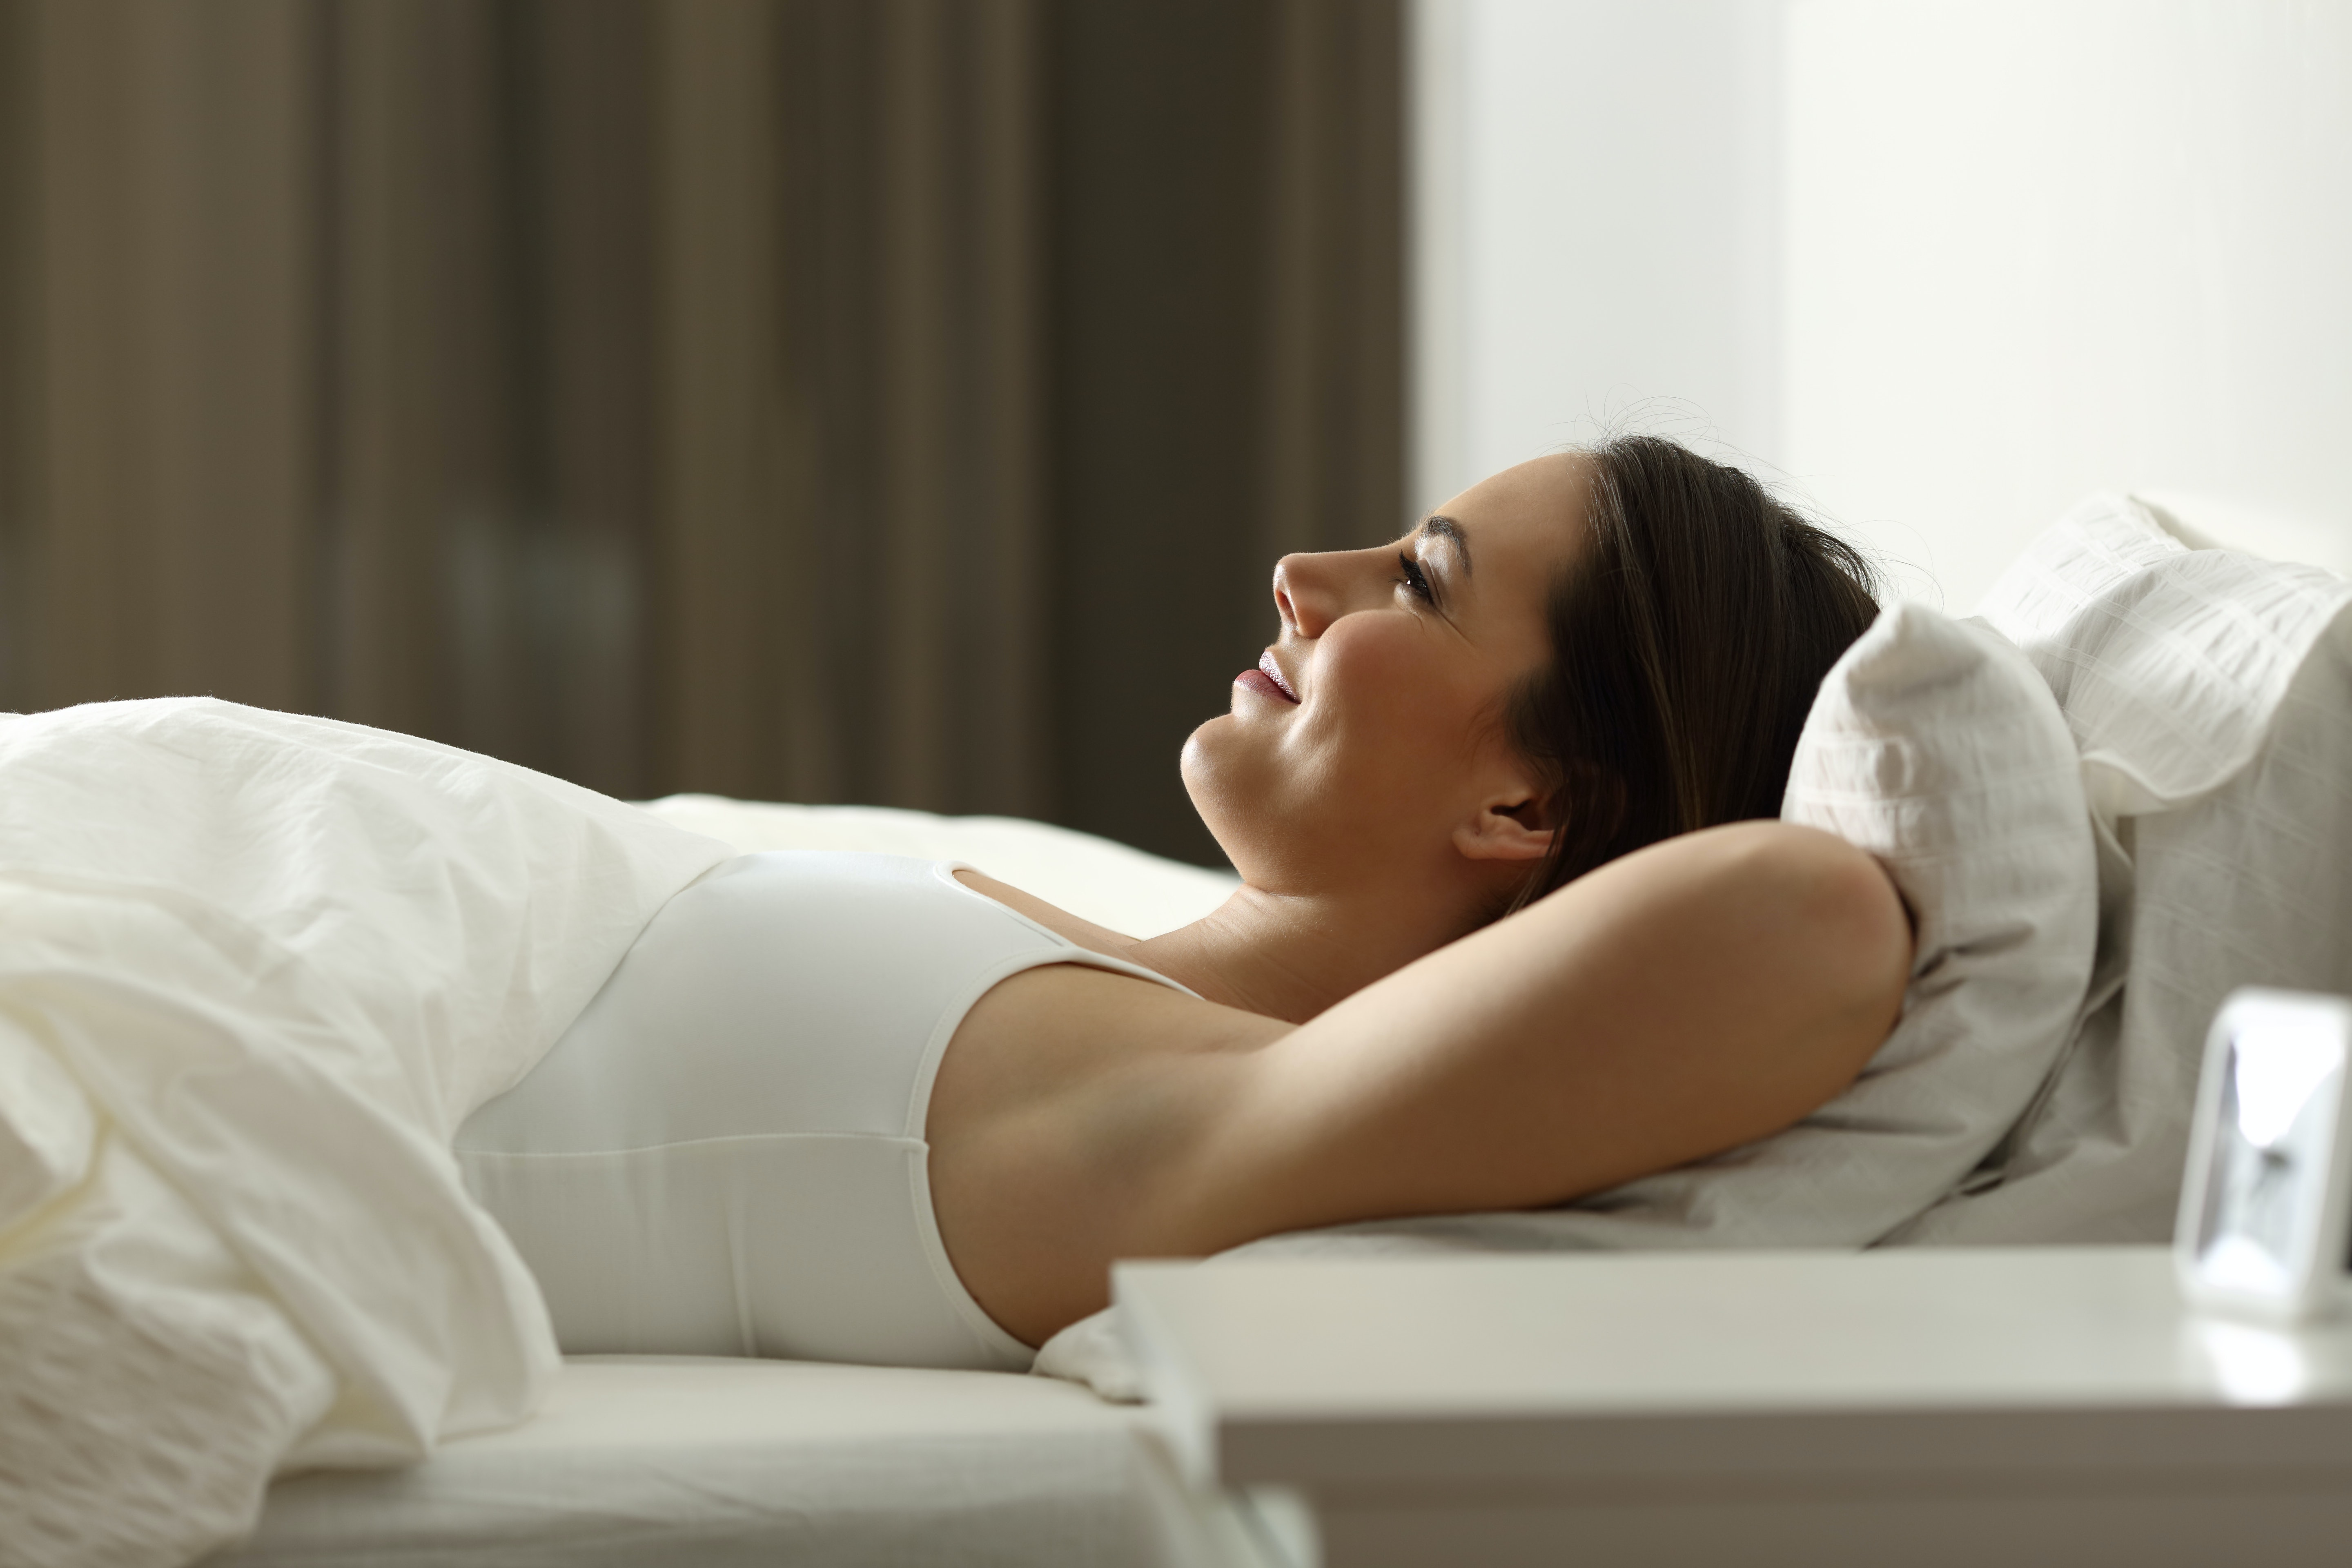 What Does Sleeping With Your Arms Above Your Head Mean Experts Say It Could Mean A Few Things